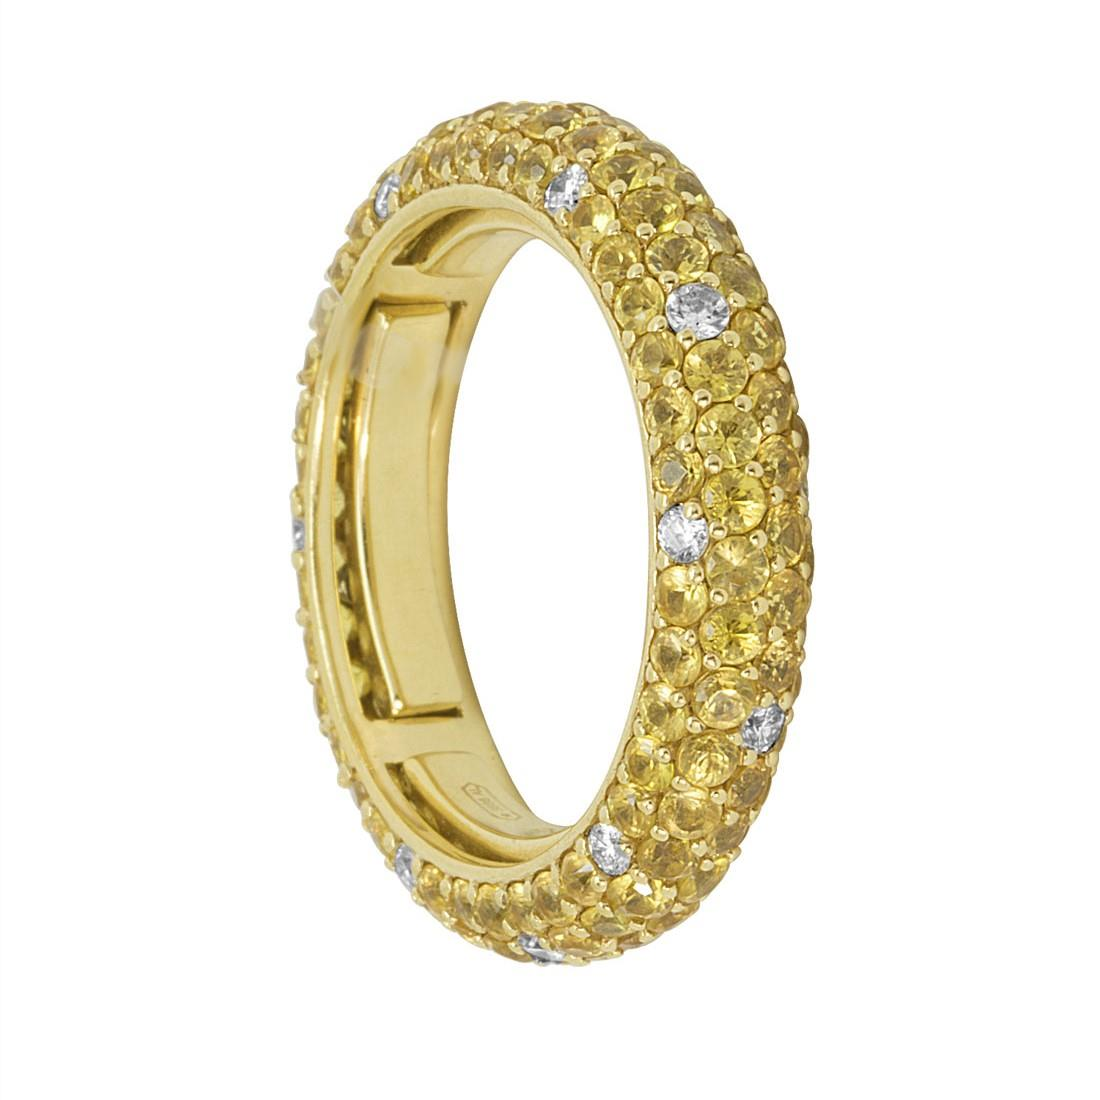 Anello eternity in oro giallo con diamanti ct 0.35 e zaffiri ct 2.85 - ALFIERI ST JOHN